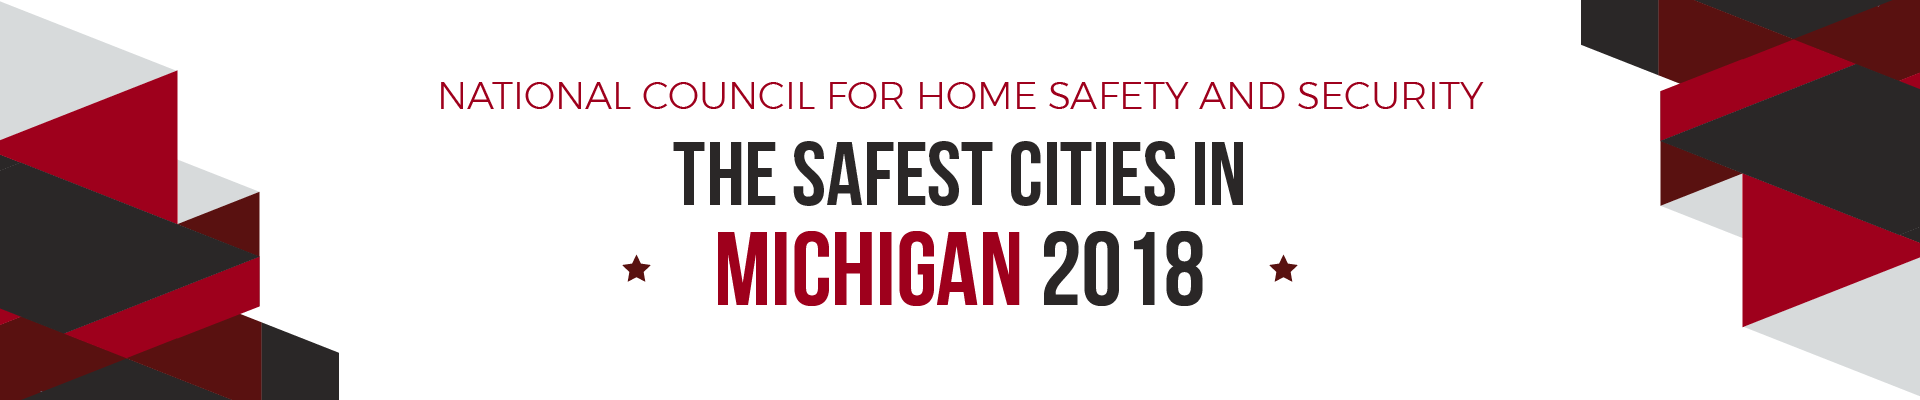 michigan safe cities 2018